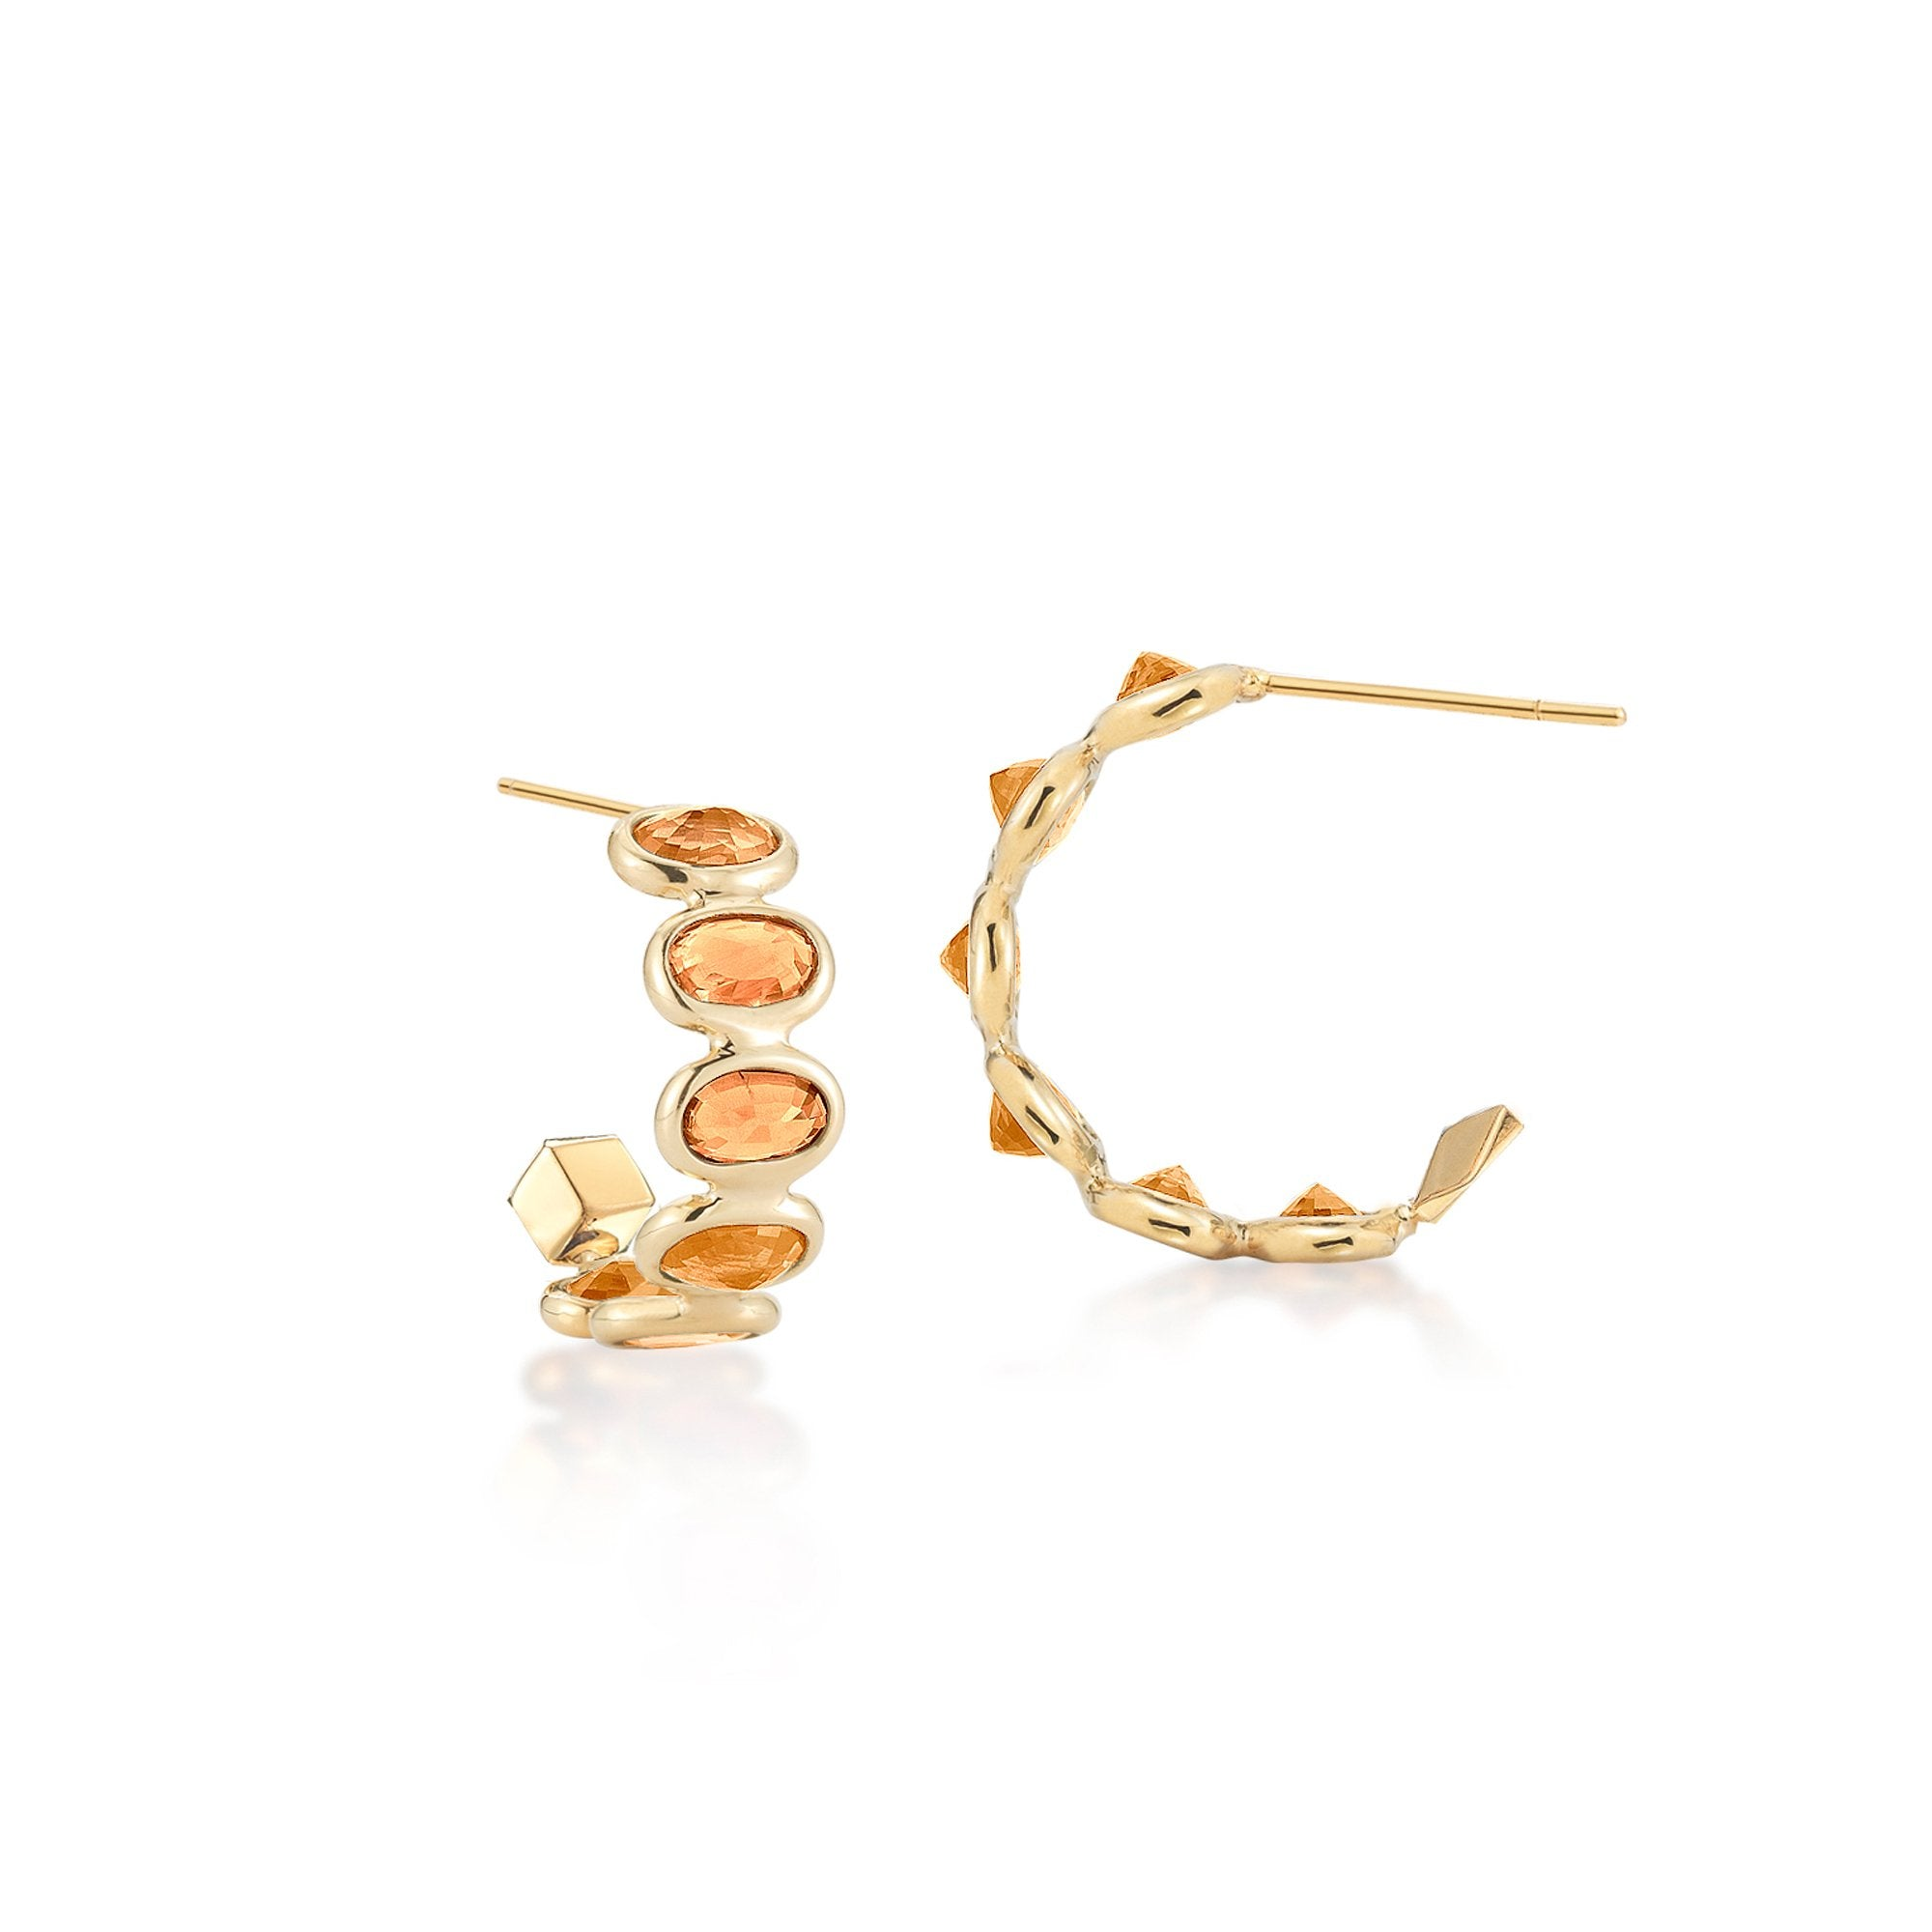 Orange Sapphire 'Ombre' Hoop Earrings, Petite - Paolo Costagli - 1